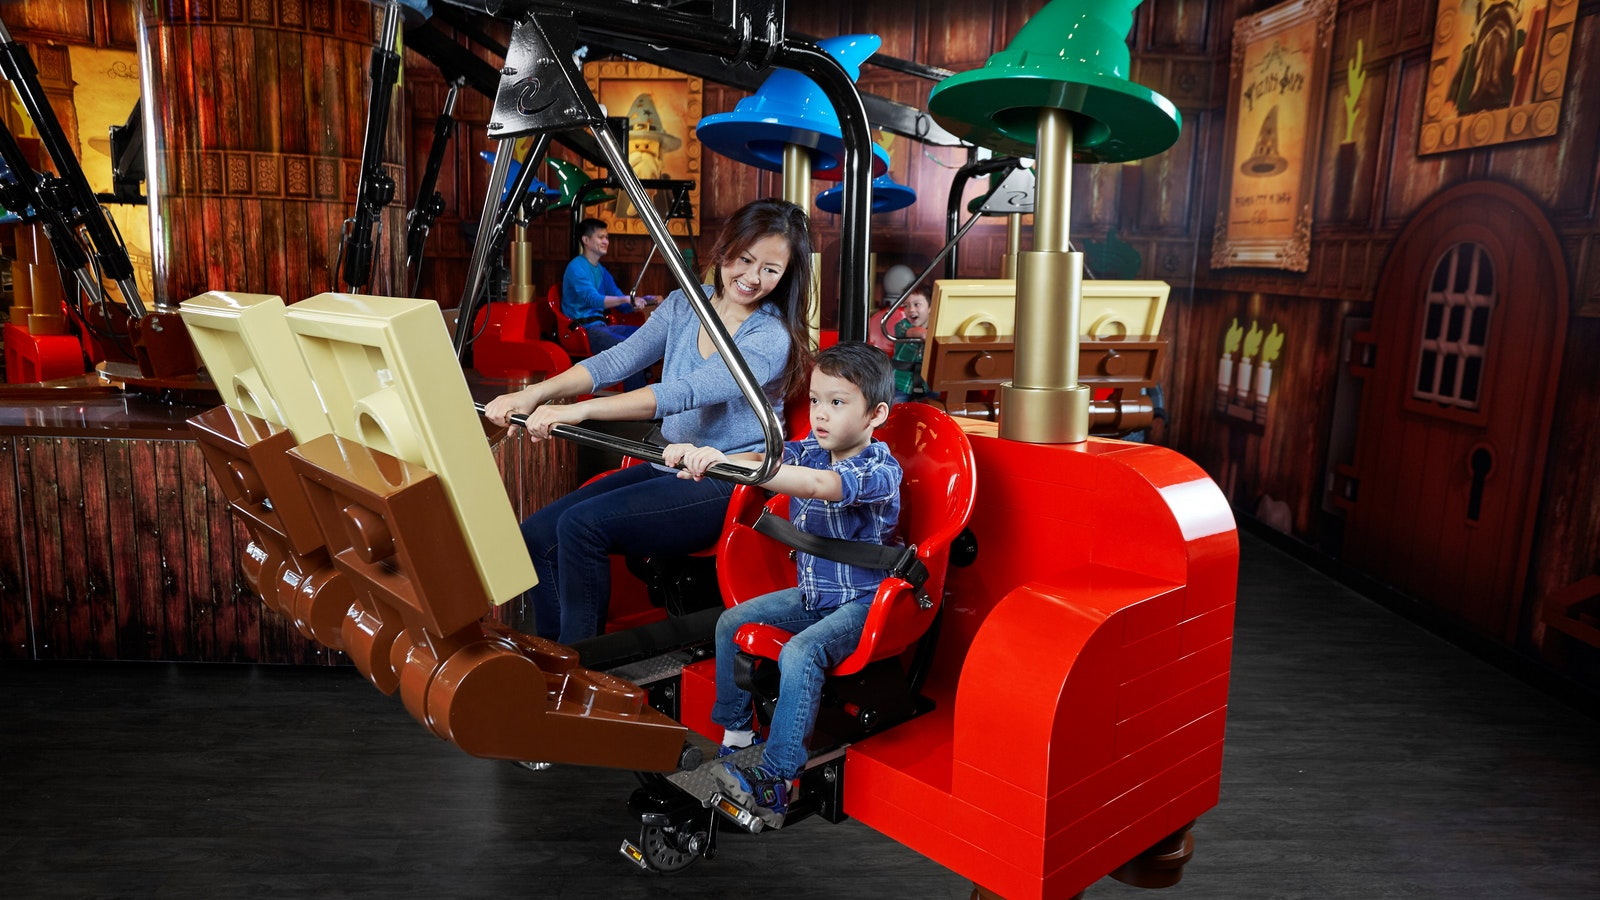 Pedal the enchanted cart in Merlin's magical potions chamber to become his next wizarding apprentice